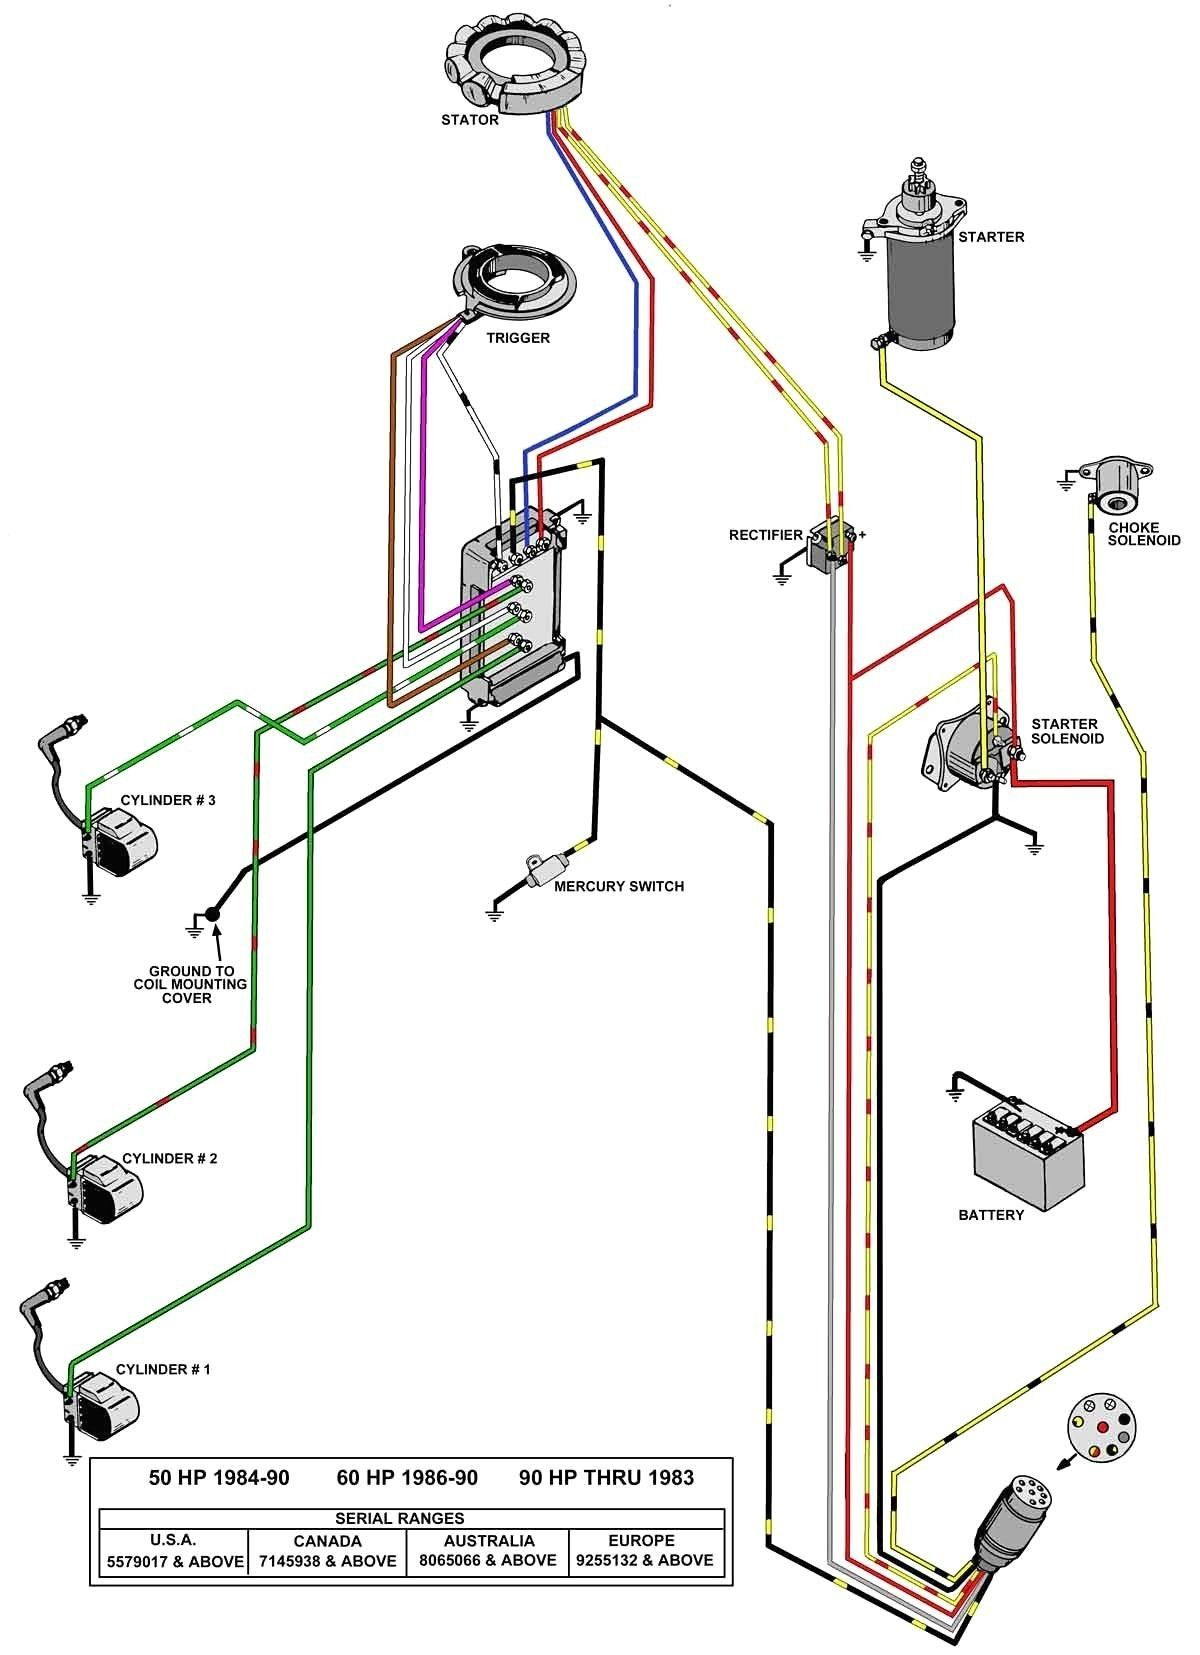 Pin di Wiring Cable | 125 Hp Mercury Outboard Wiring Diagram |  | Pinterest